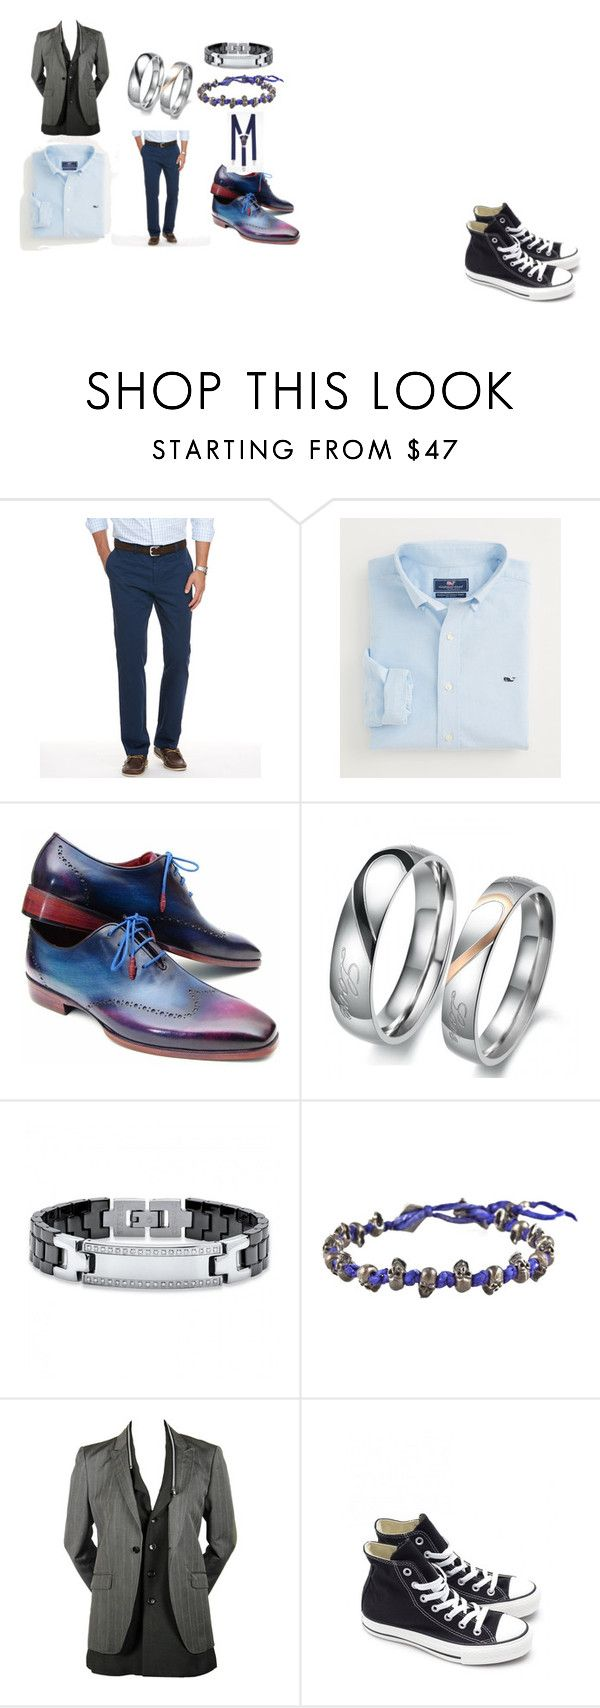 """""""Men's Chic"""" by demijay on Polyvore featuring Vineyard Vines, M. Cohen, Converse, Express, women's clothing, women, female, woman, misses and juniors"""